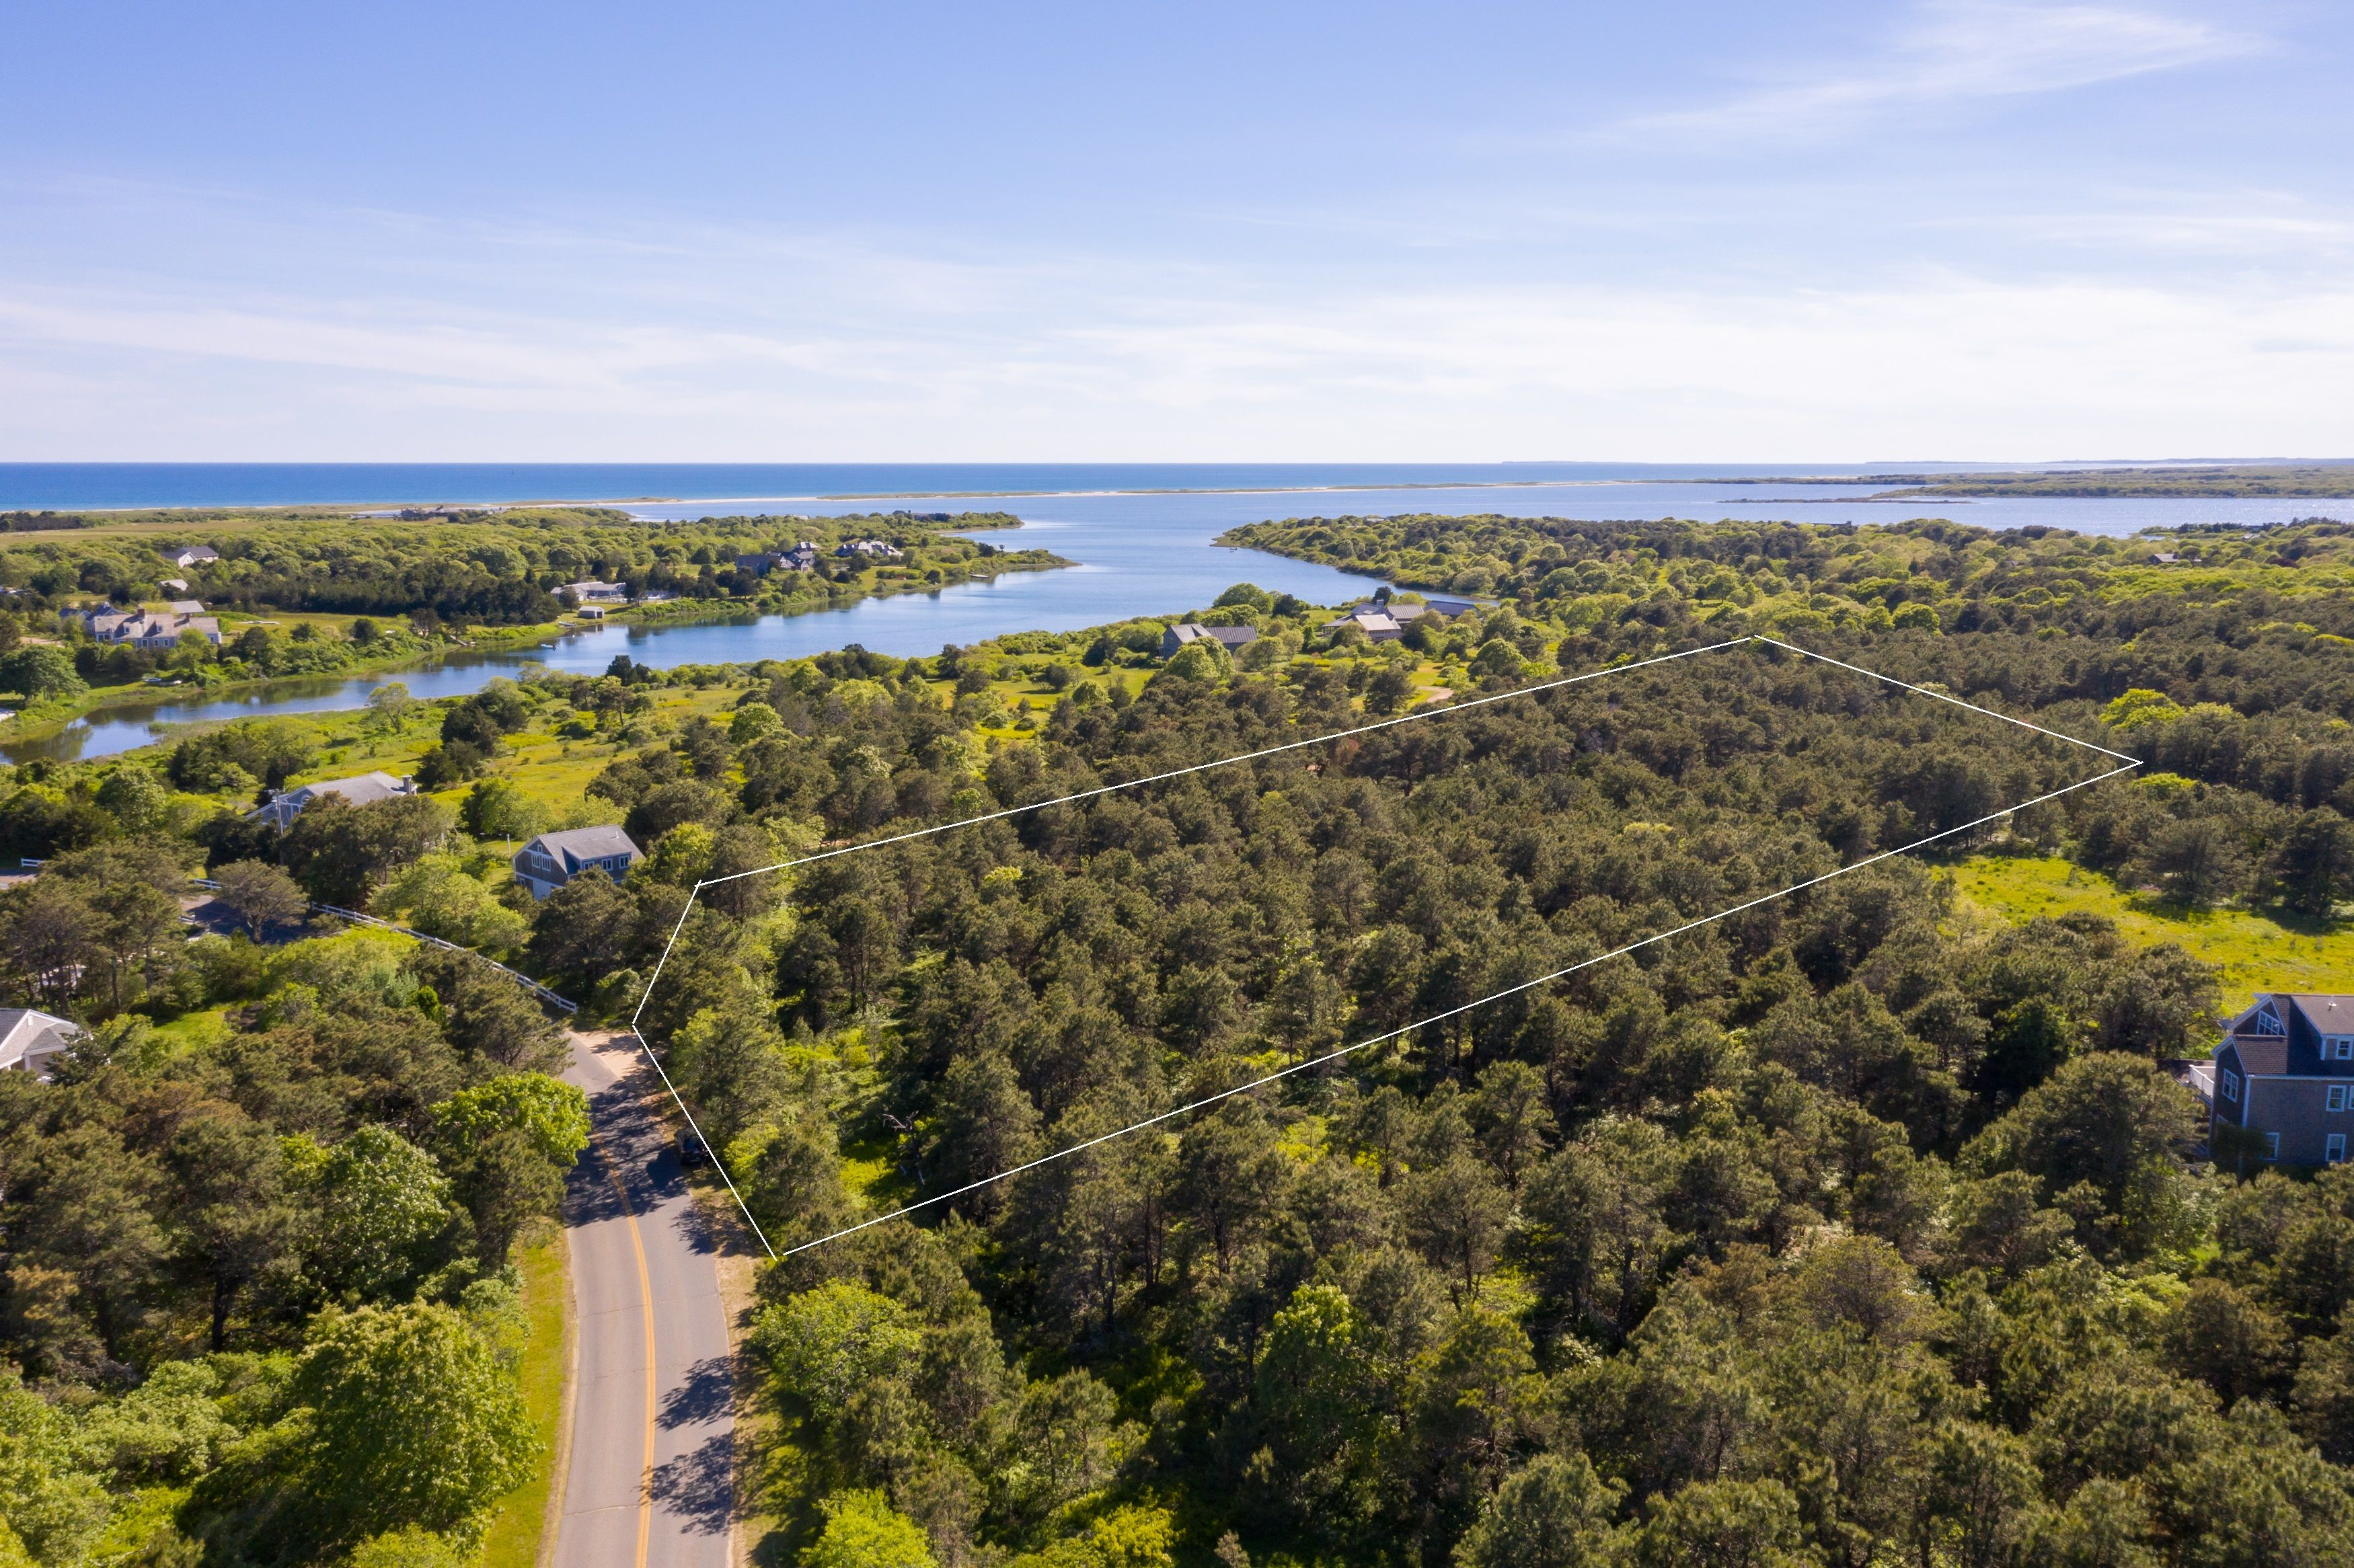 Slough Cove Road 12 Loon Cove Way Edgartown Photo 3